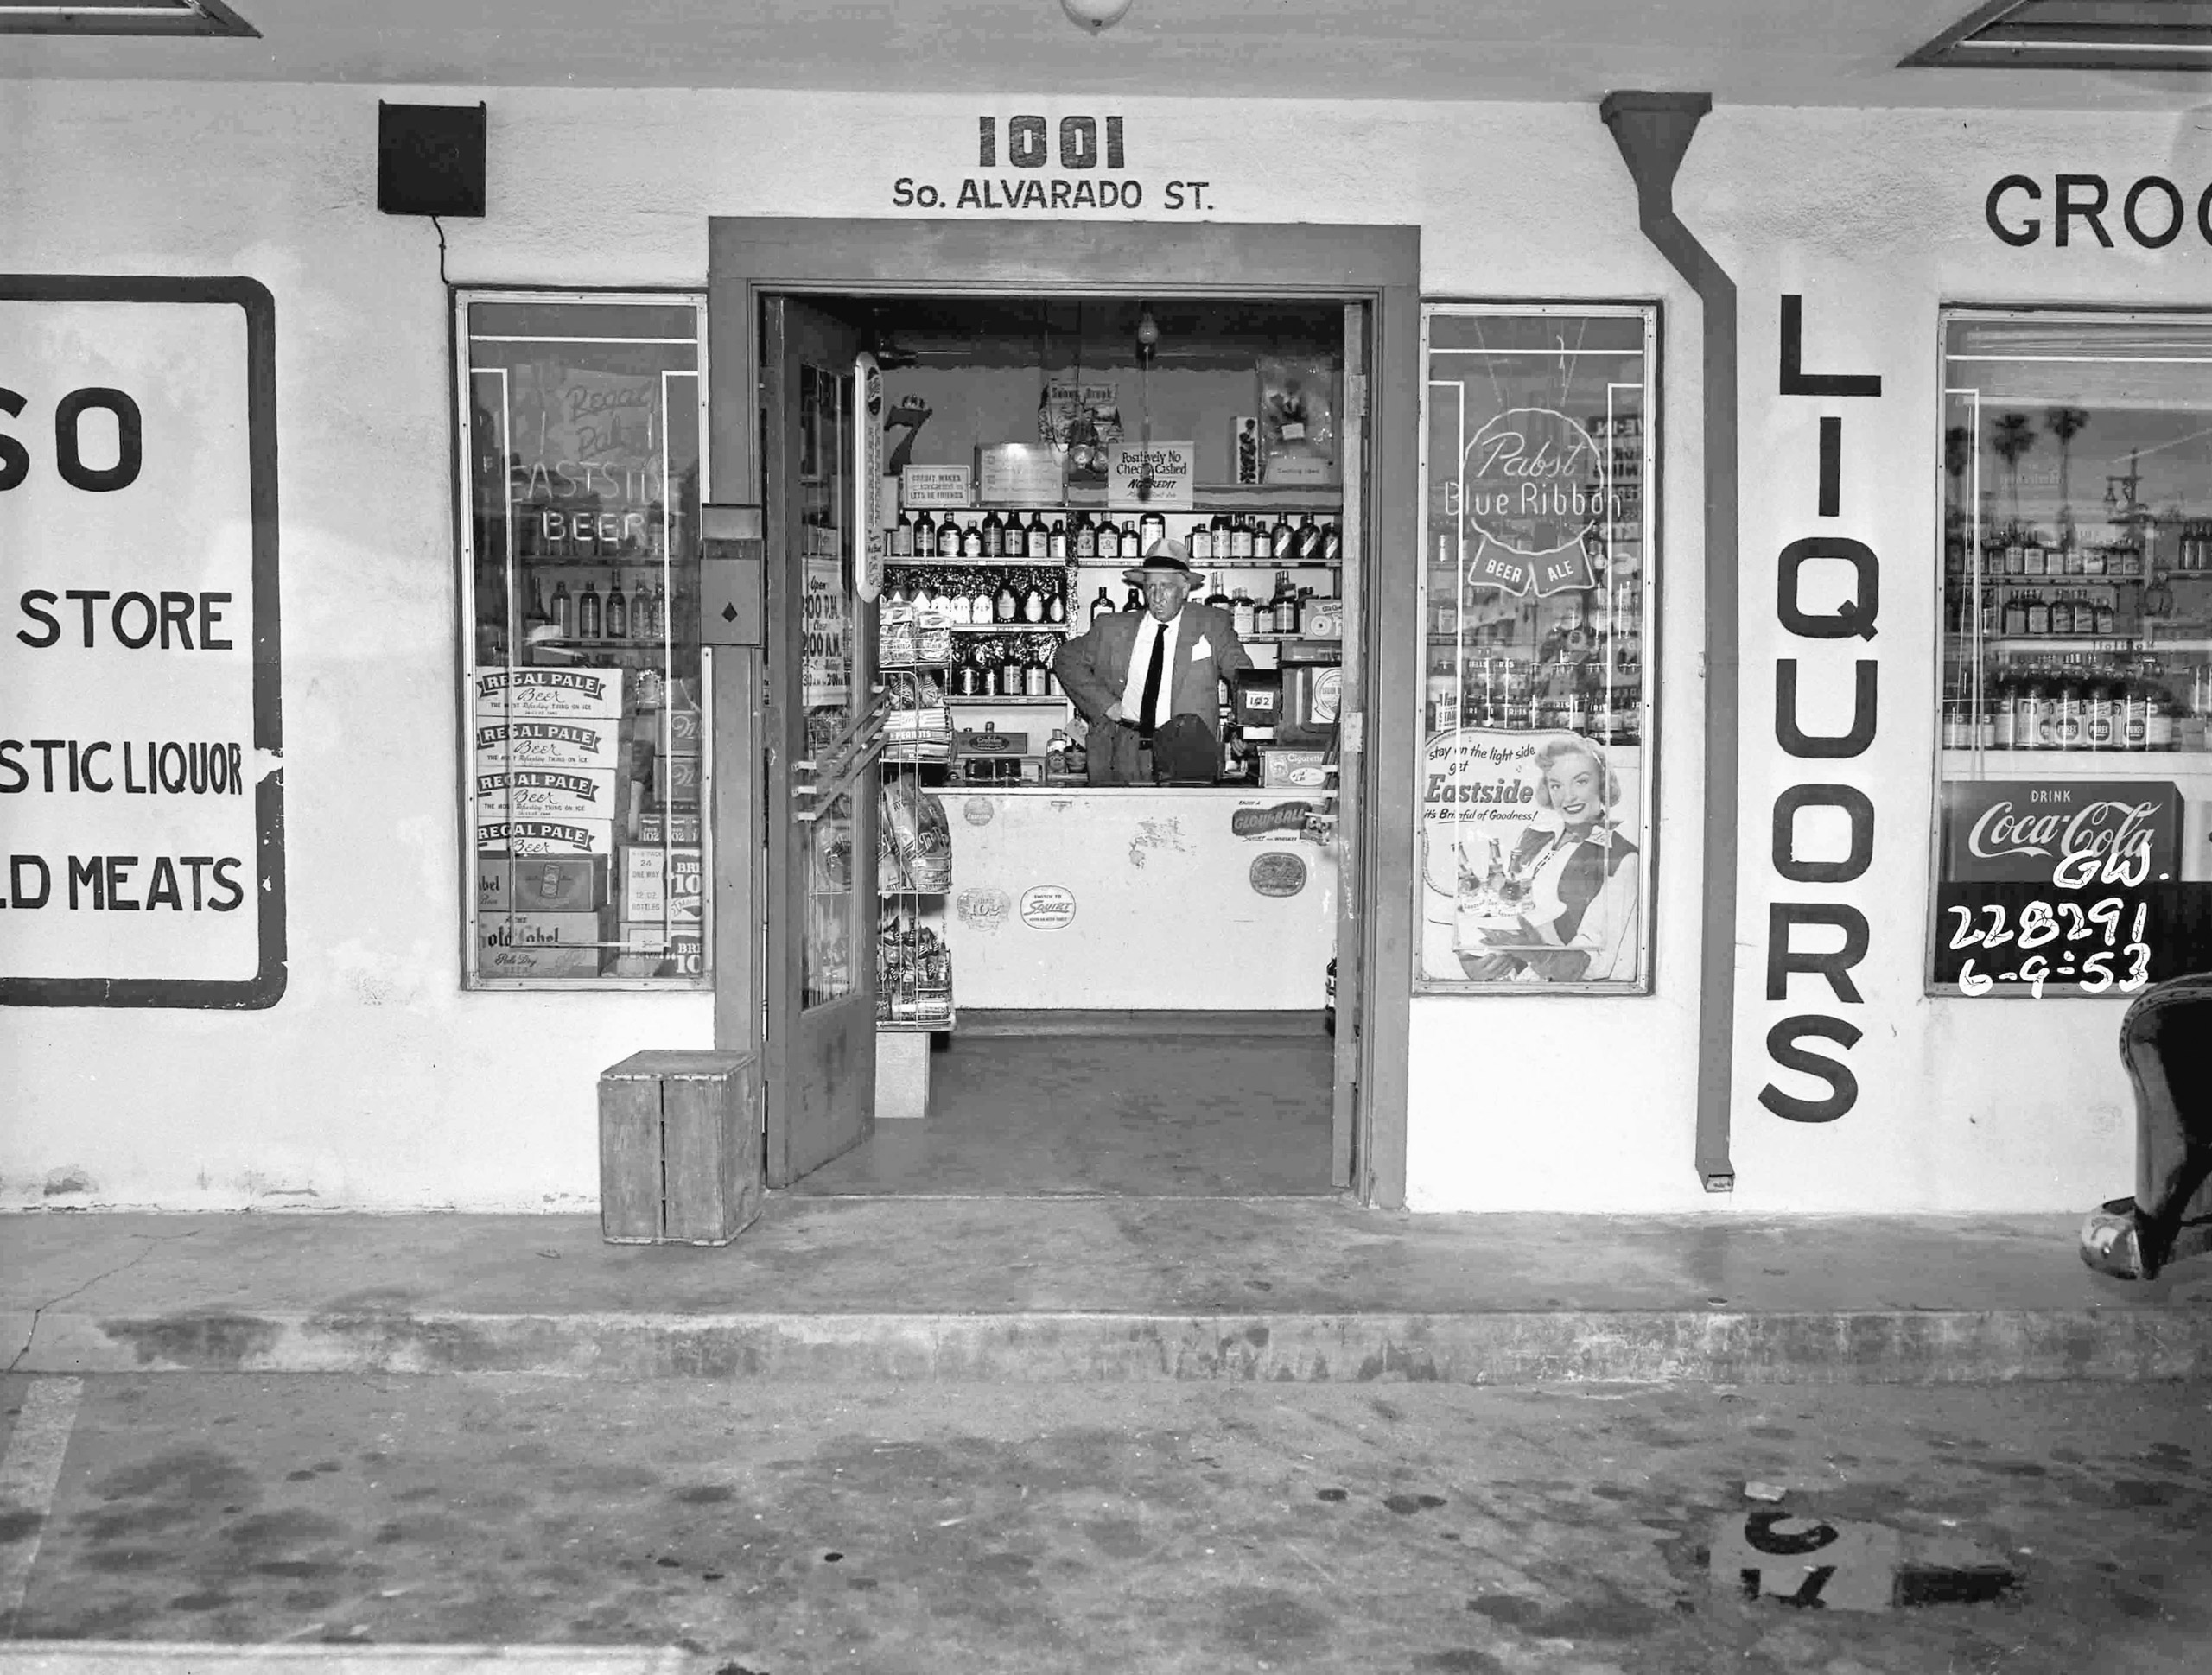 Sgt. Harry Hansen, who worked the Black Dahlia case, stands inside liquor store after a robbery/homicide on June 9, 1953.